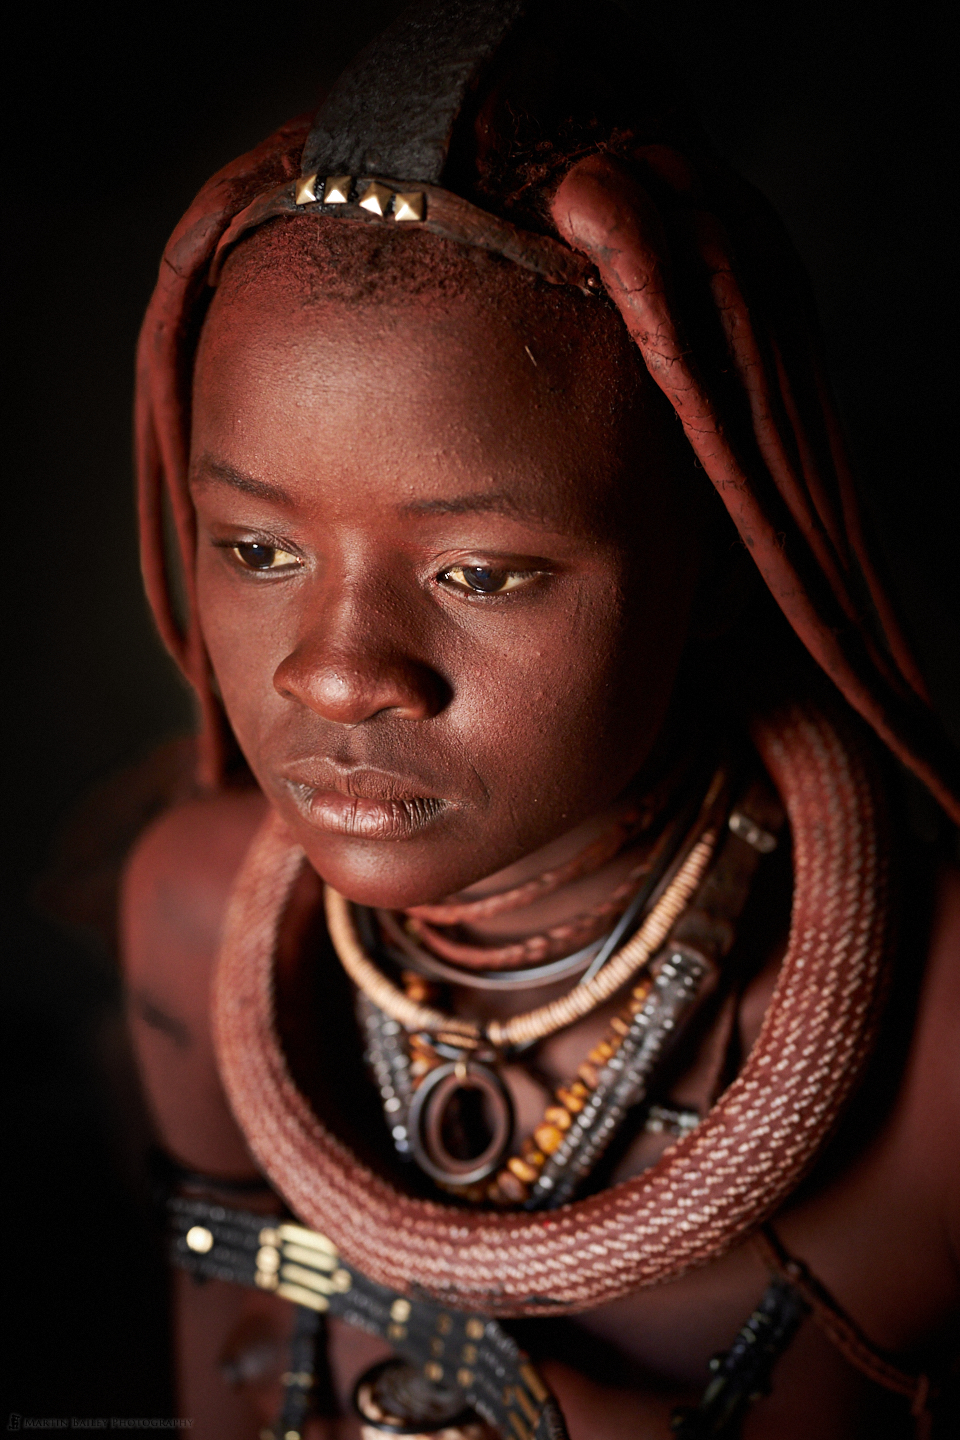 A young Himba lady caught in a moment of thought